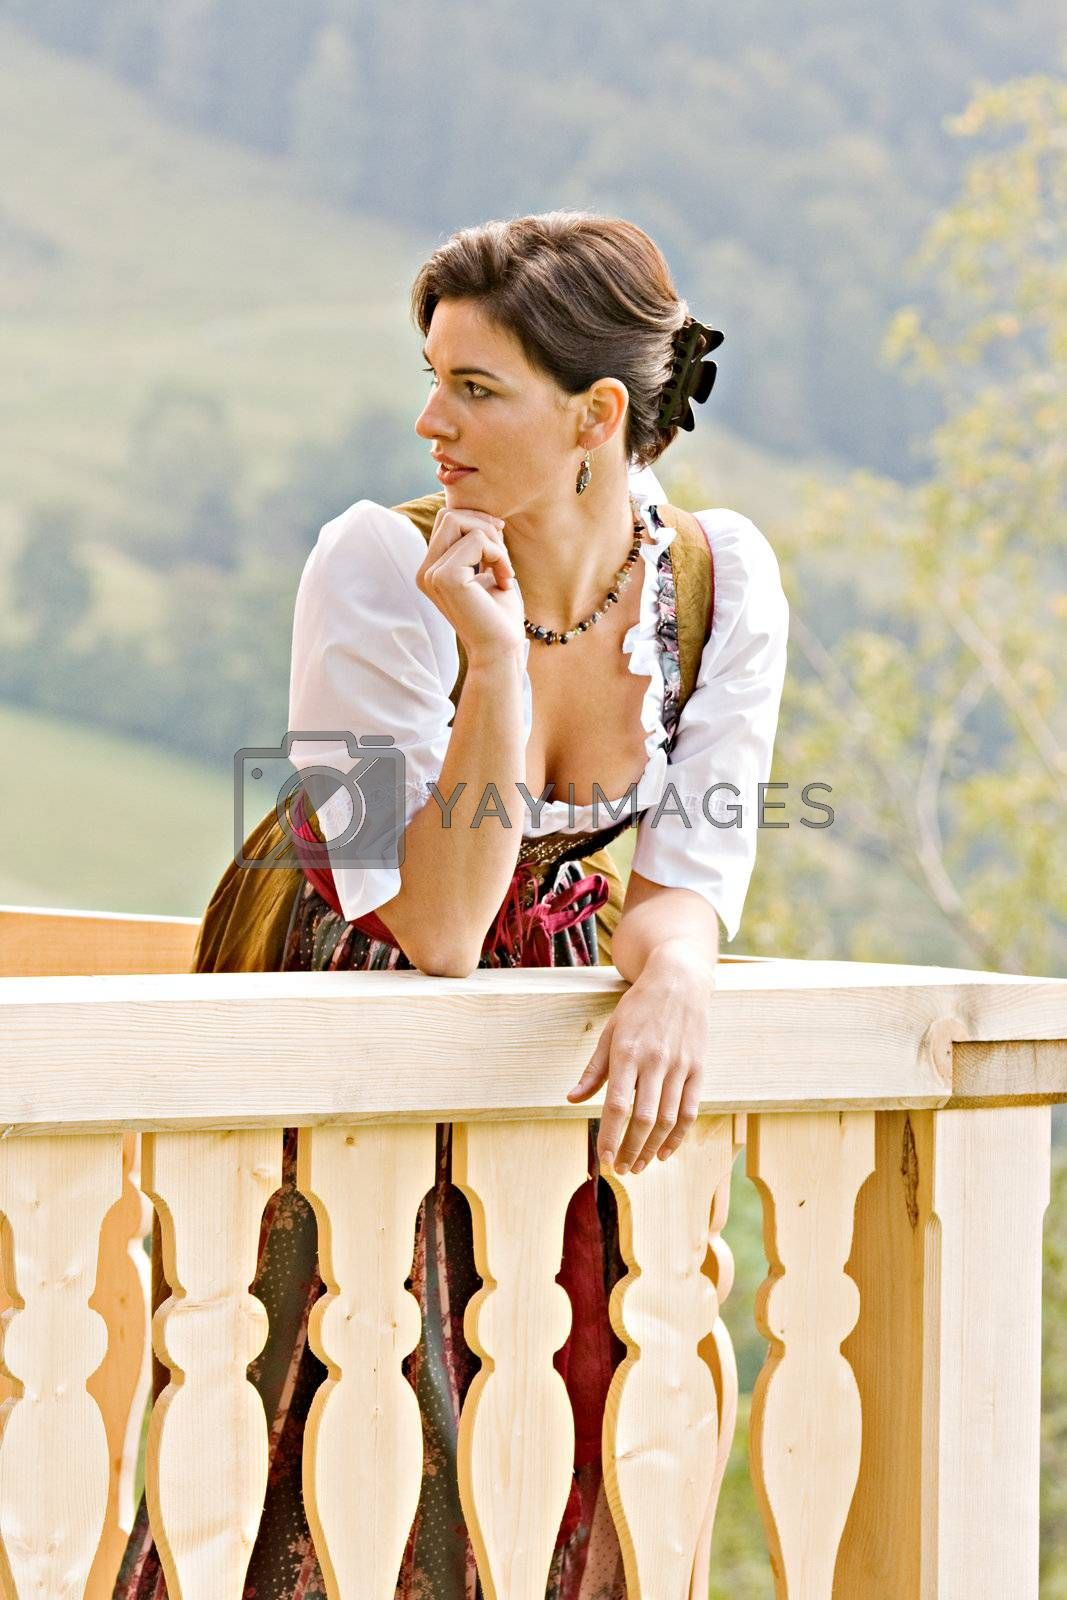 Bavarian girls from enjoying the view from the balcony